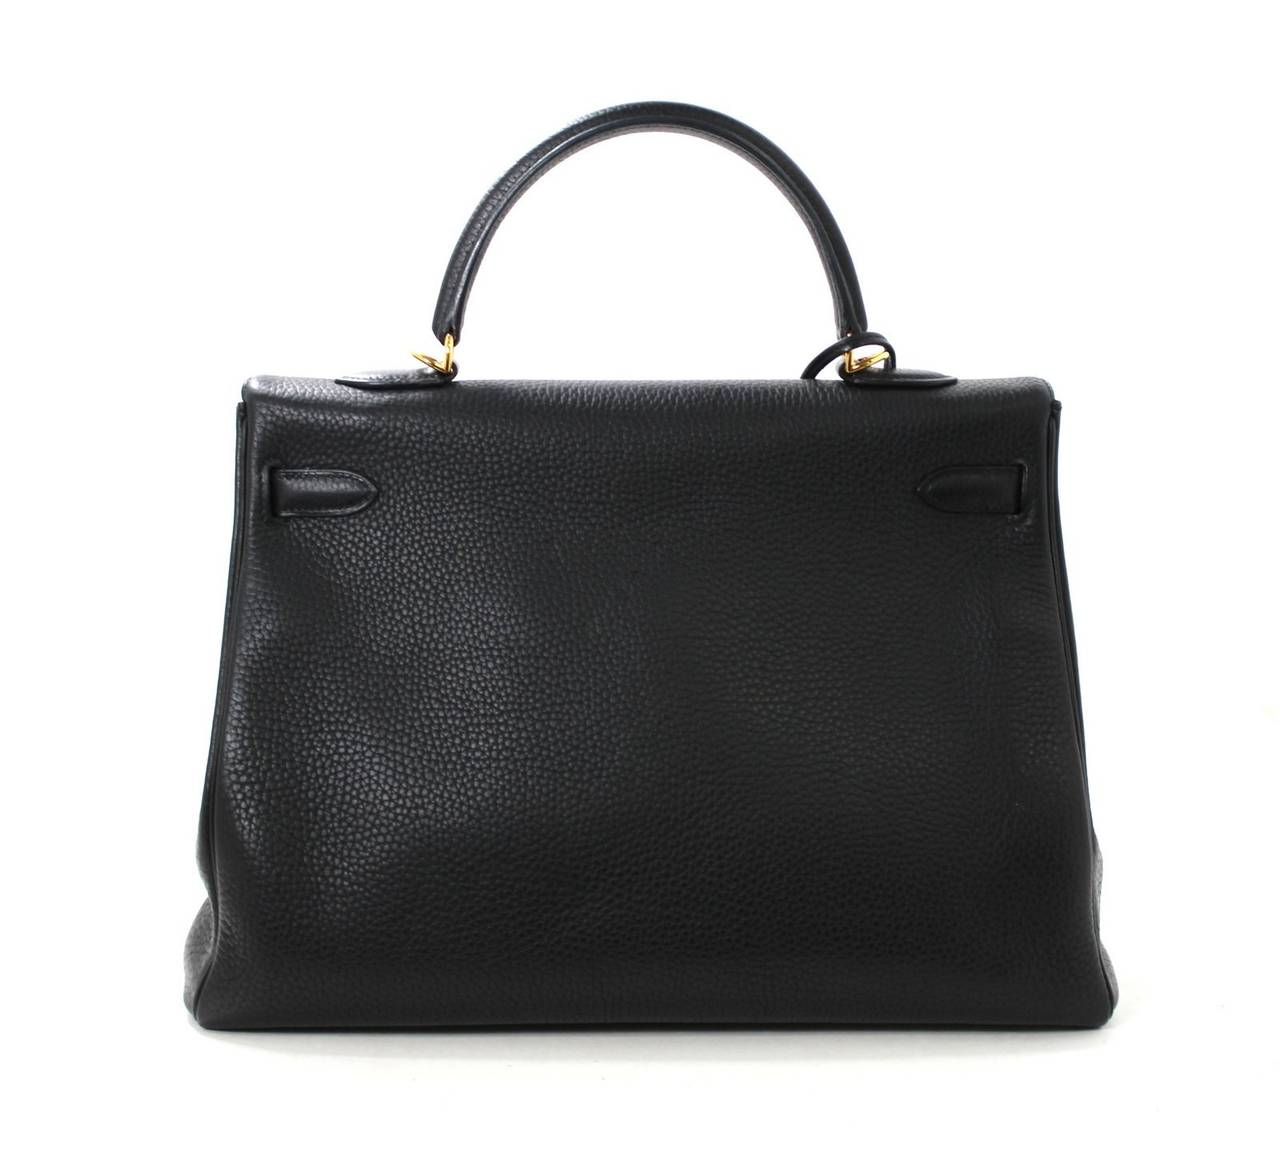 HERMES Kelly Bag- Black Clemence Leather with  Gold, 35 cm 2